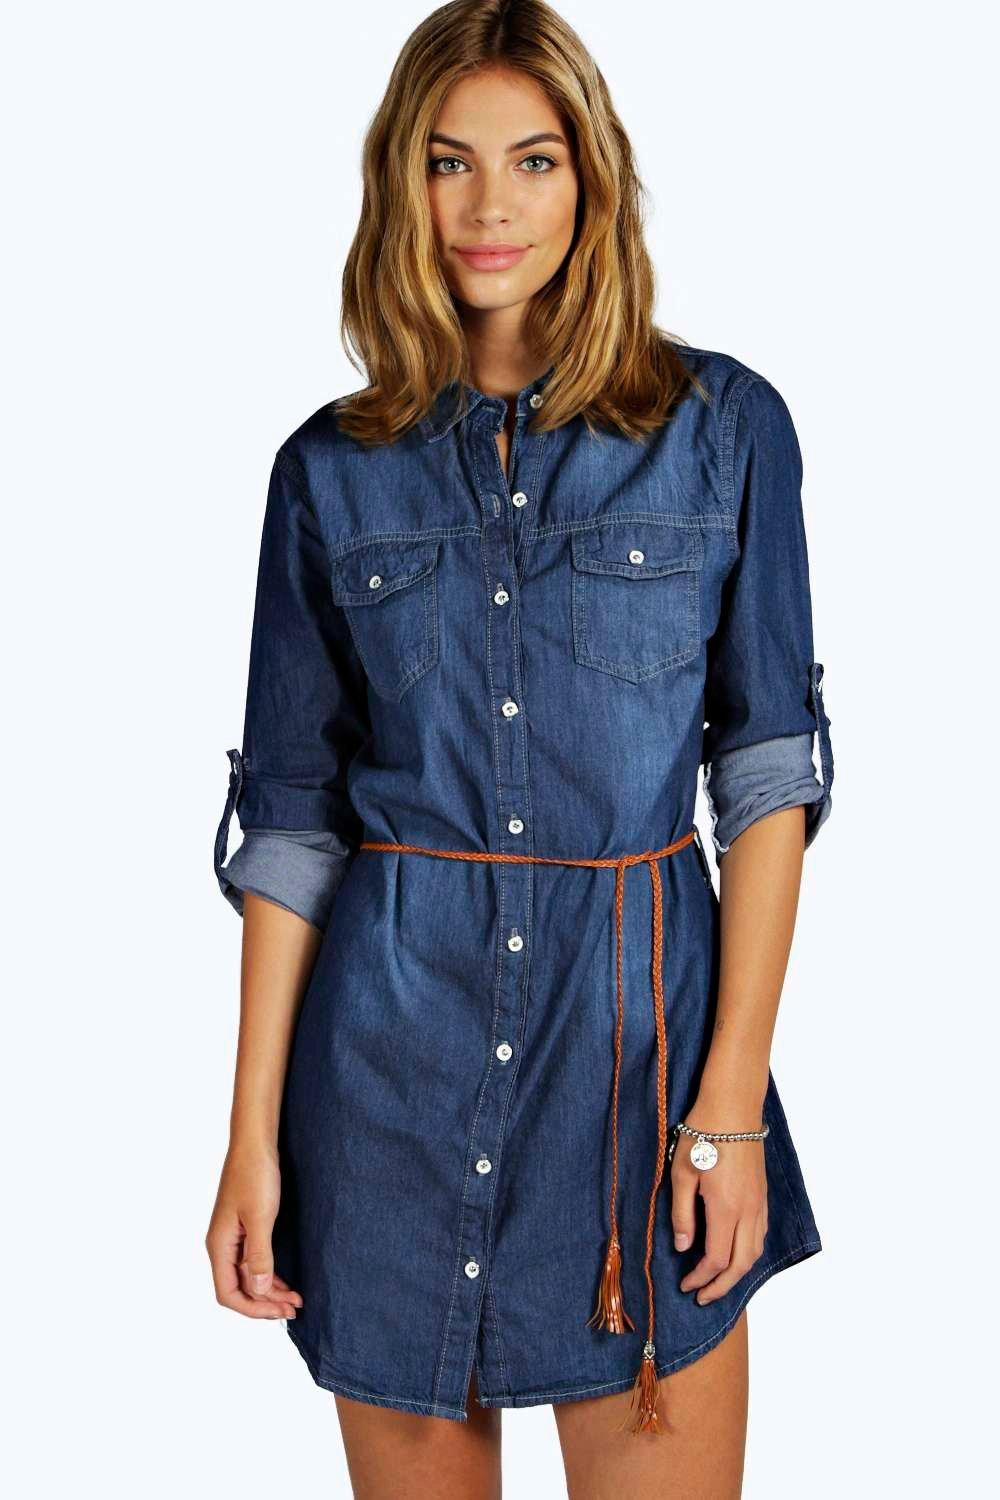 boohoo Bethany Belted Denim Tunic Dress - dark blue